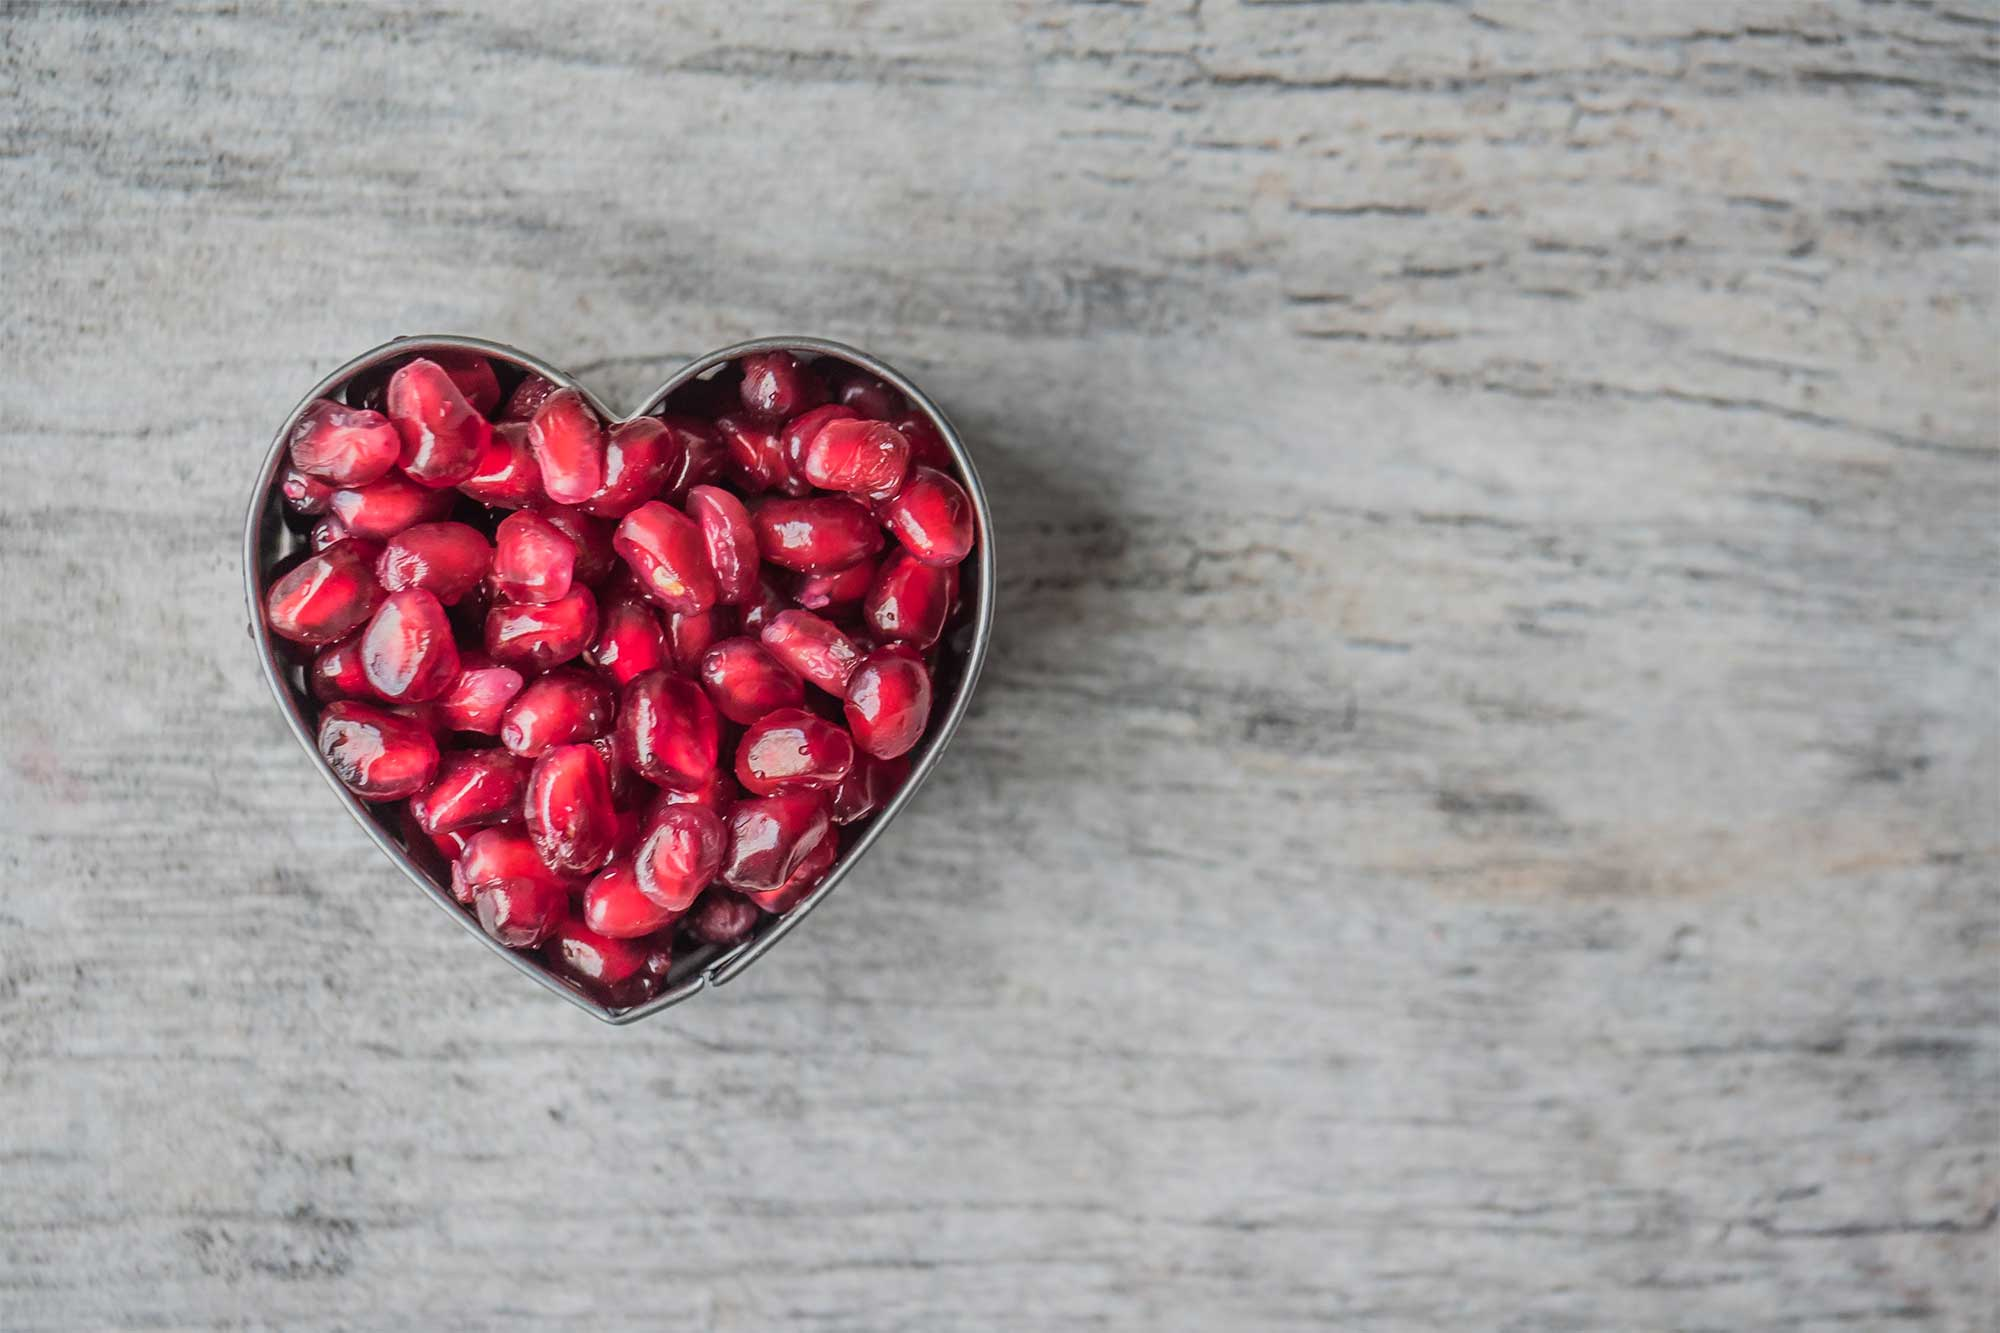 Pomegranate seeds arranged in a heart shape